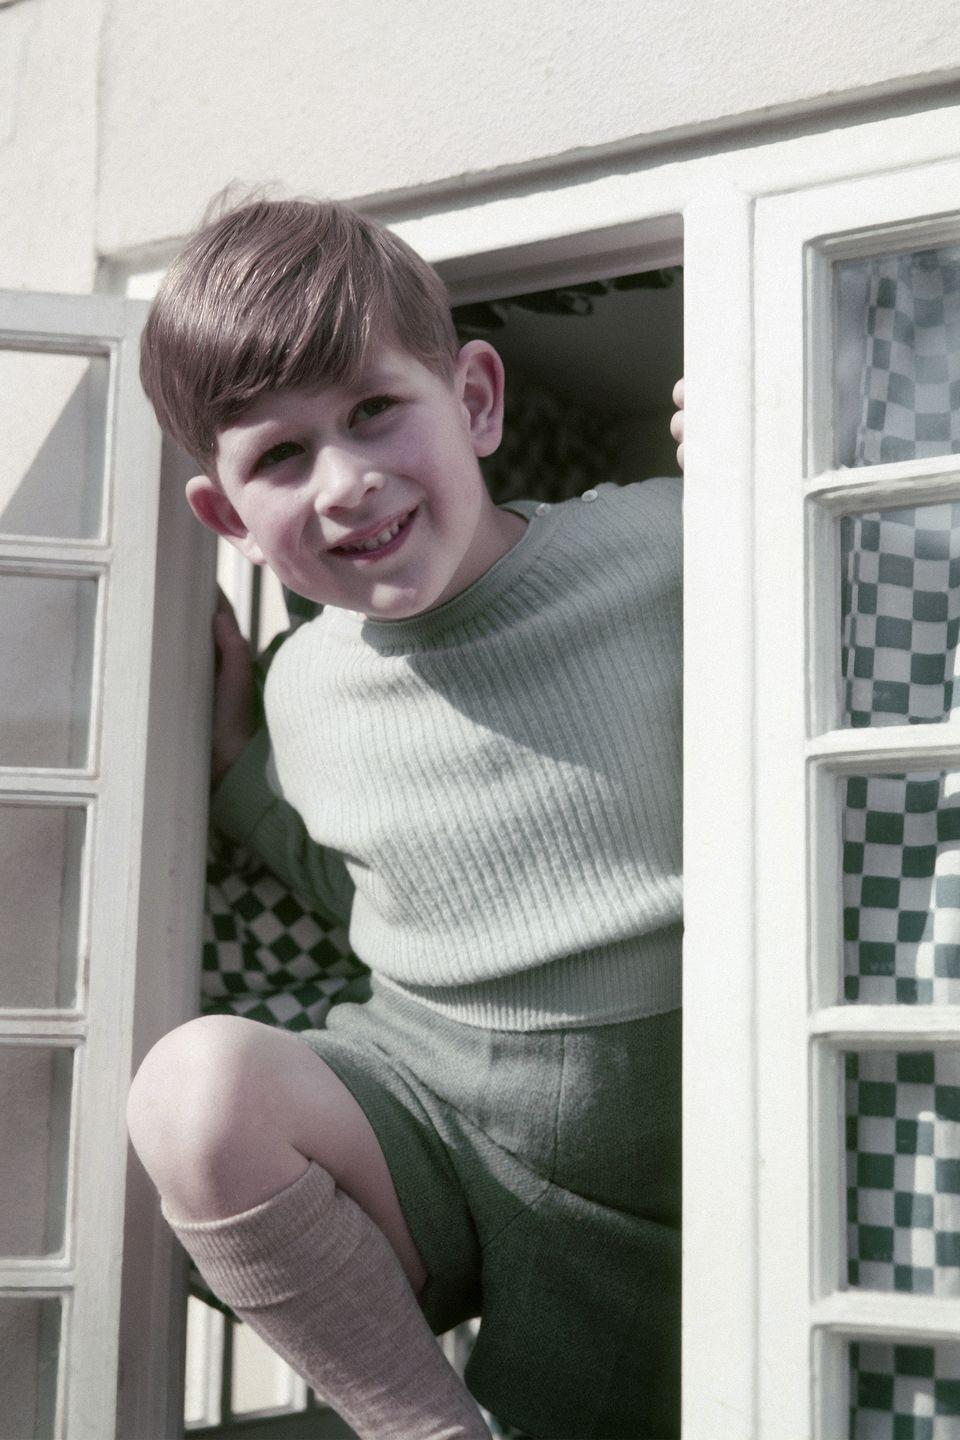 <p>Prince Charles smiles cheekily as he peeks out the window of a cottage in Windsor.</p>